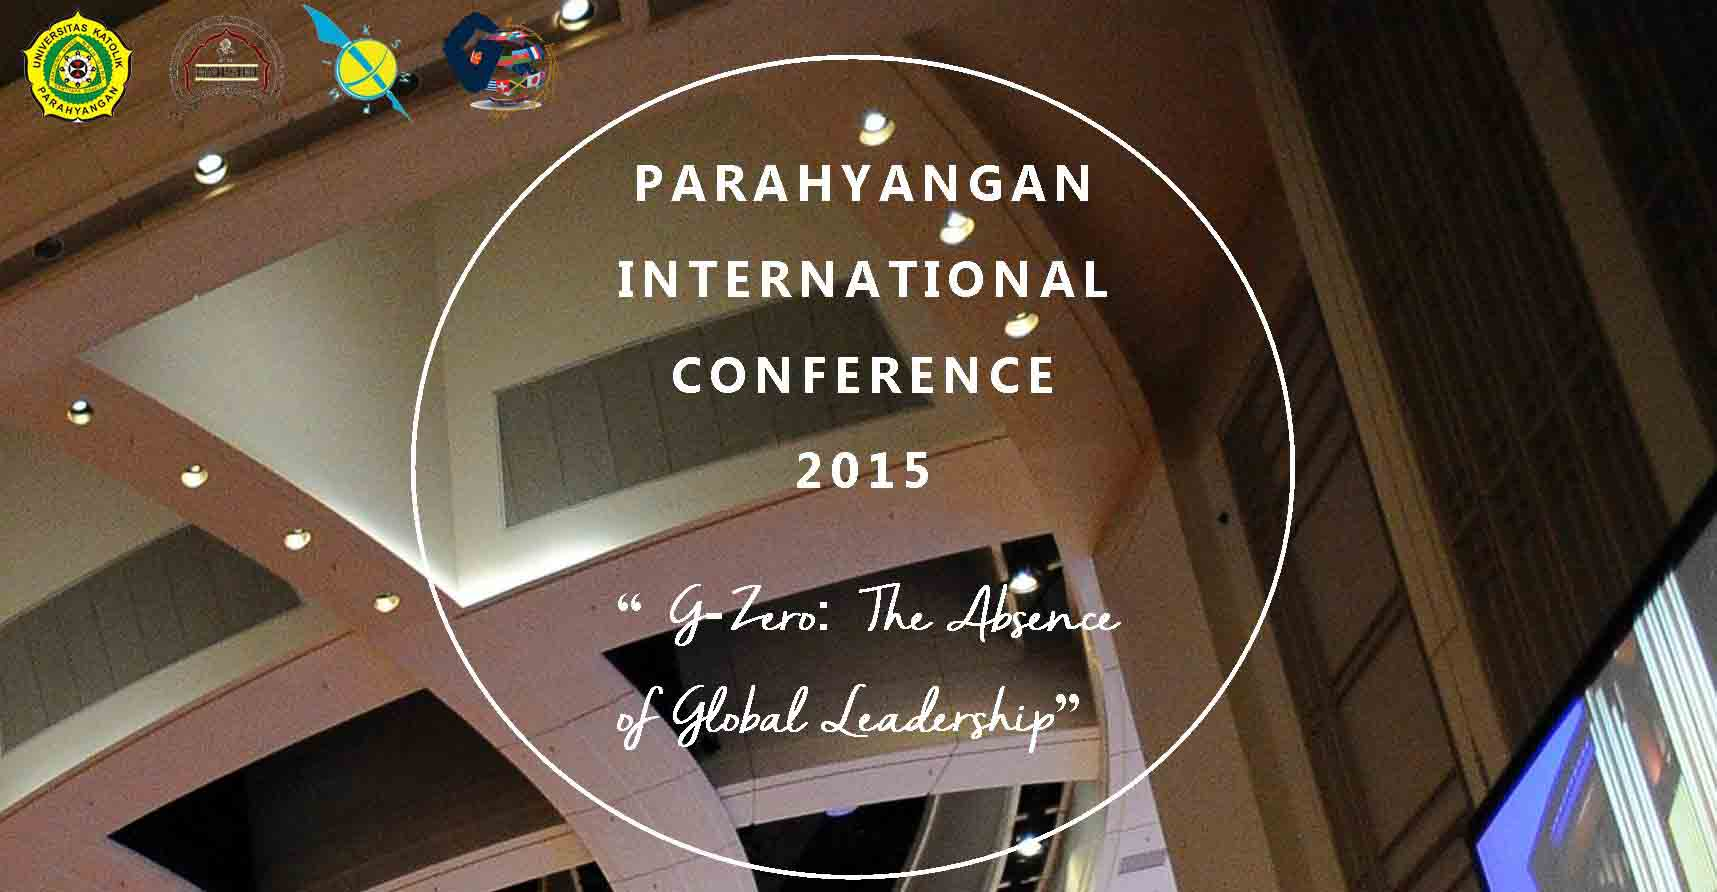 Parahyangan International Conference 2015